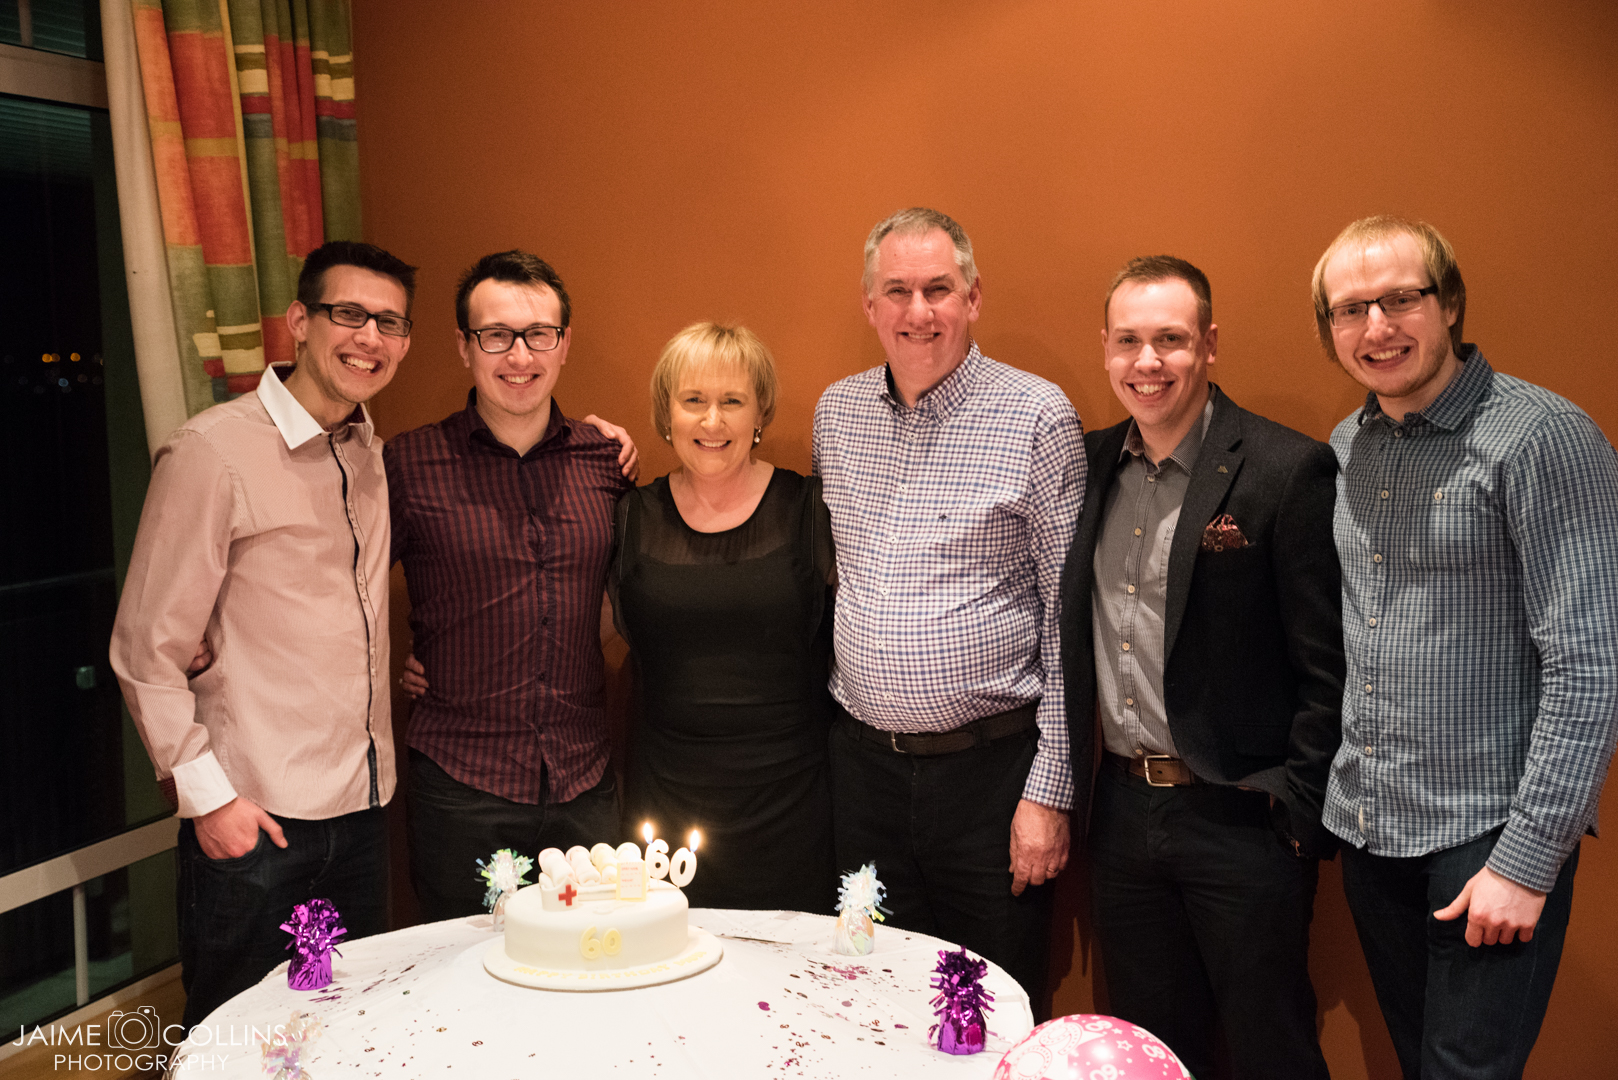 Jason (the eldest), Gavin (my twin), mum, dad, Ryan (the second eldest)and myself all posing for a group shot